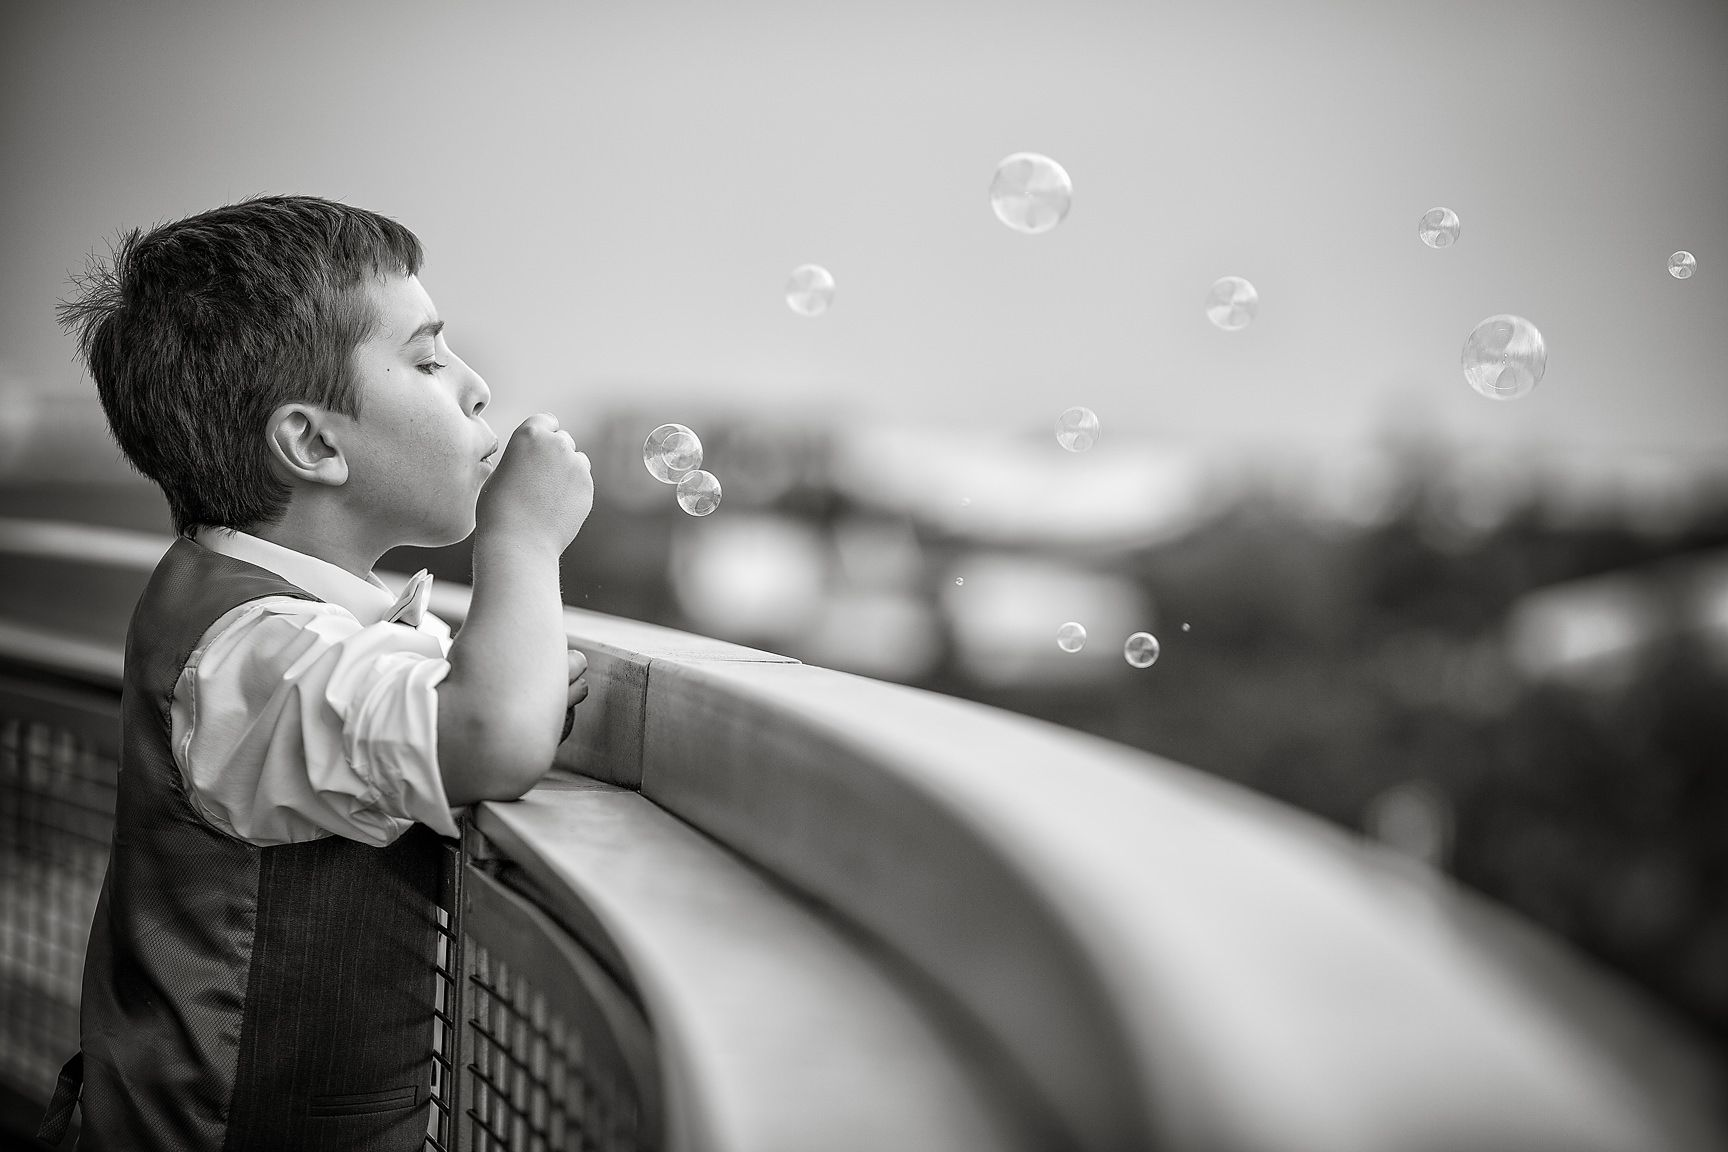 Young boy wearing a waistcoat blows bubbles over the balcony of The Lowry in Manchester